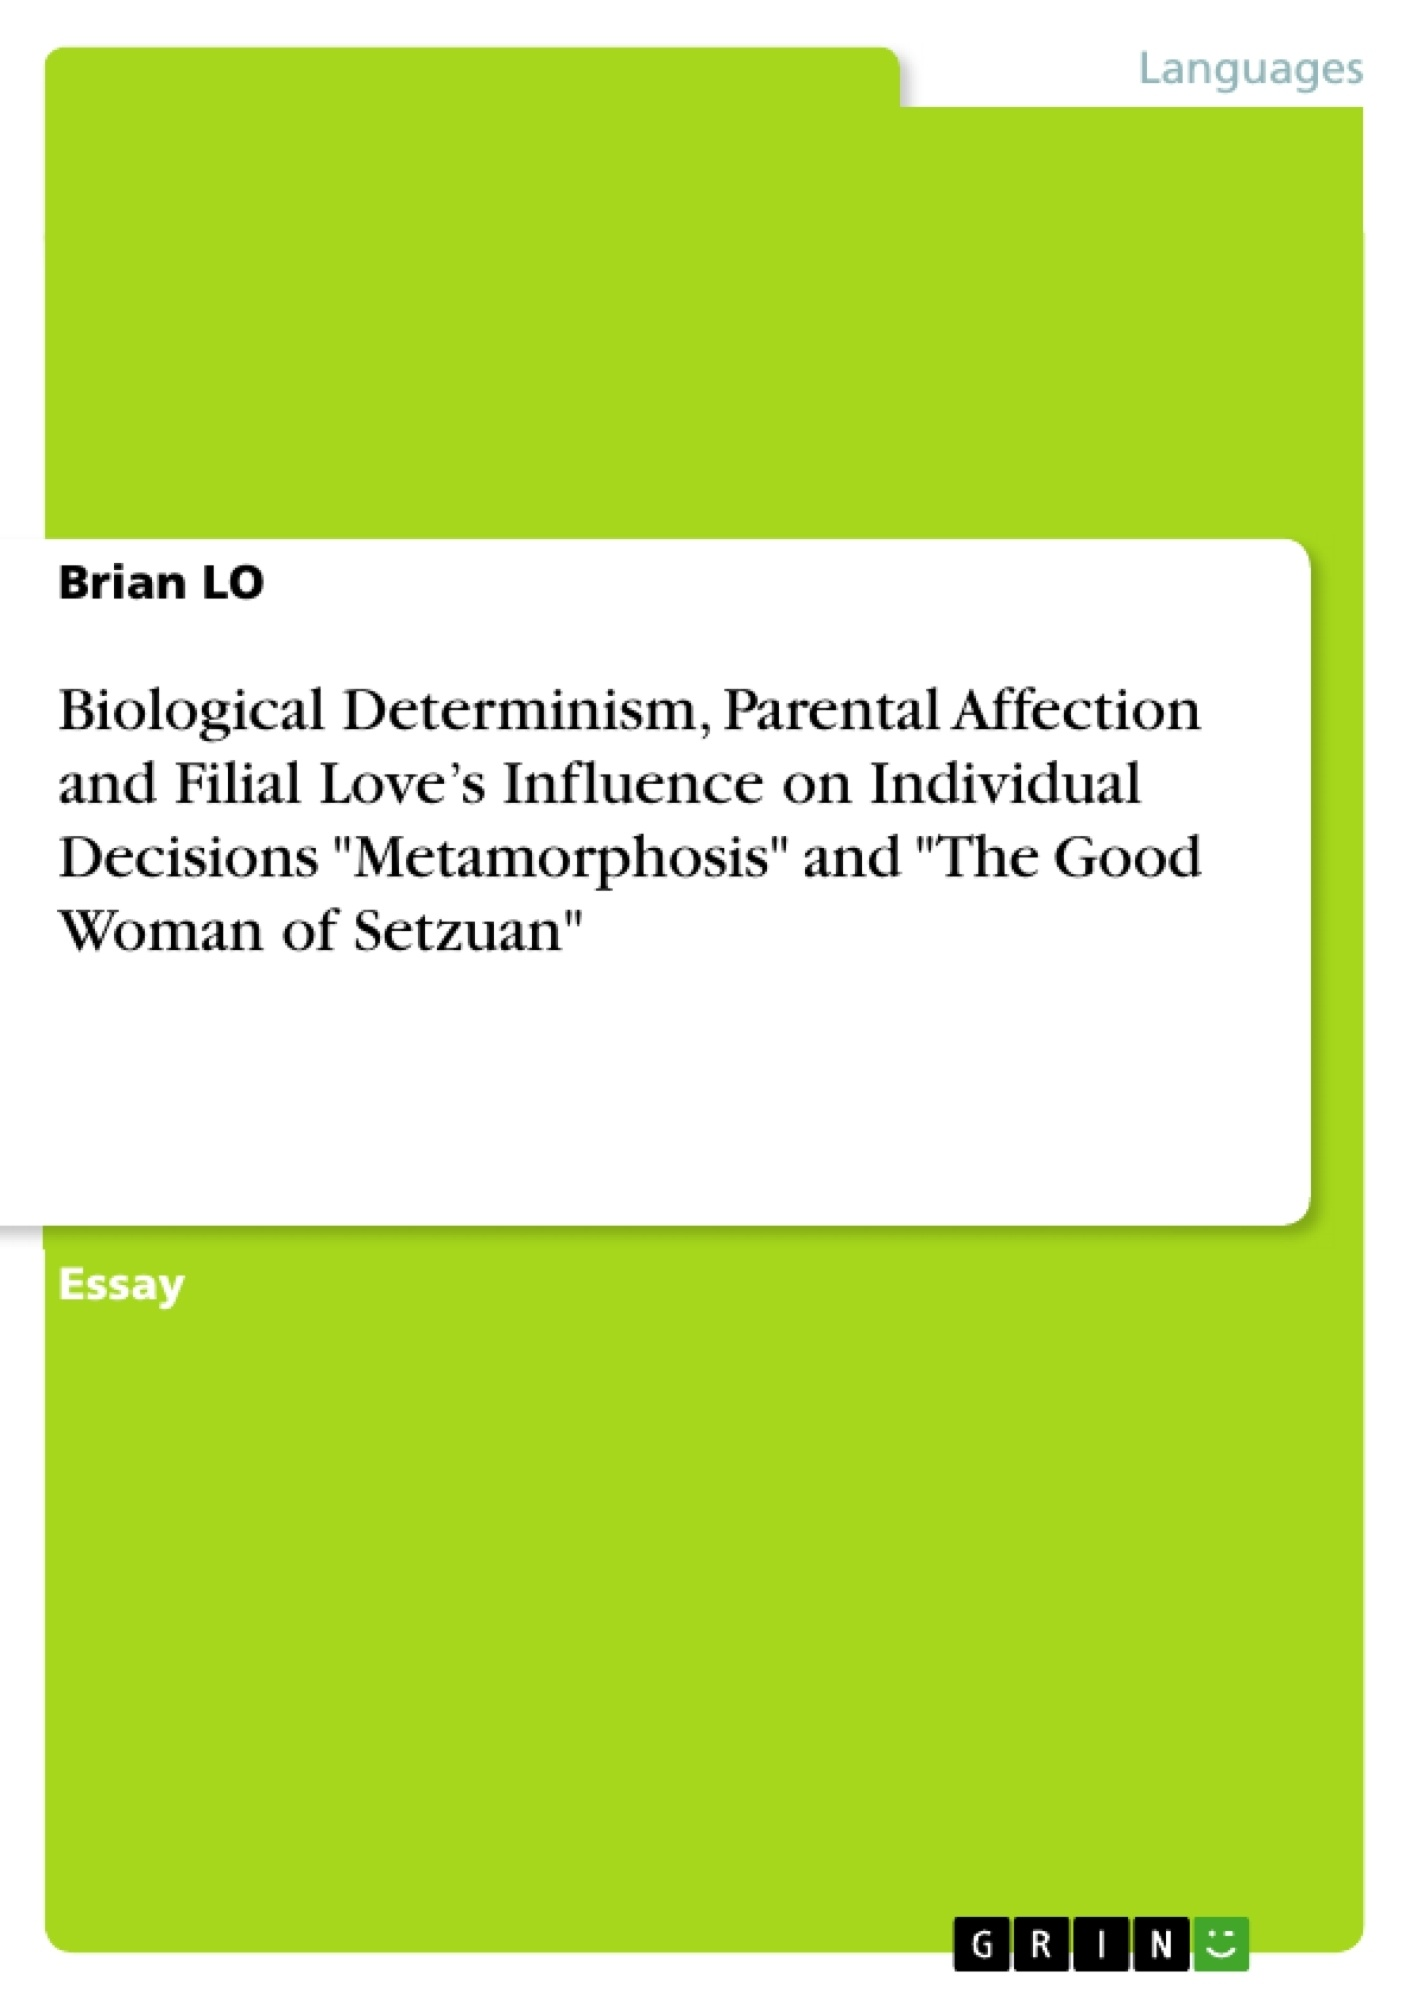 """Title: Biological Determinism, Parental Affection and Filial Love's Influence on Individual Decisions """"Metamorphosis"""" and """"The Good Woman of Setzuan"""""""